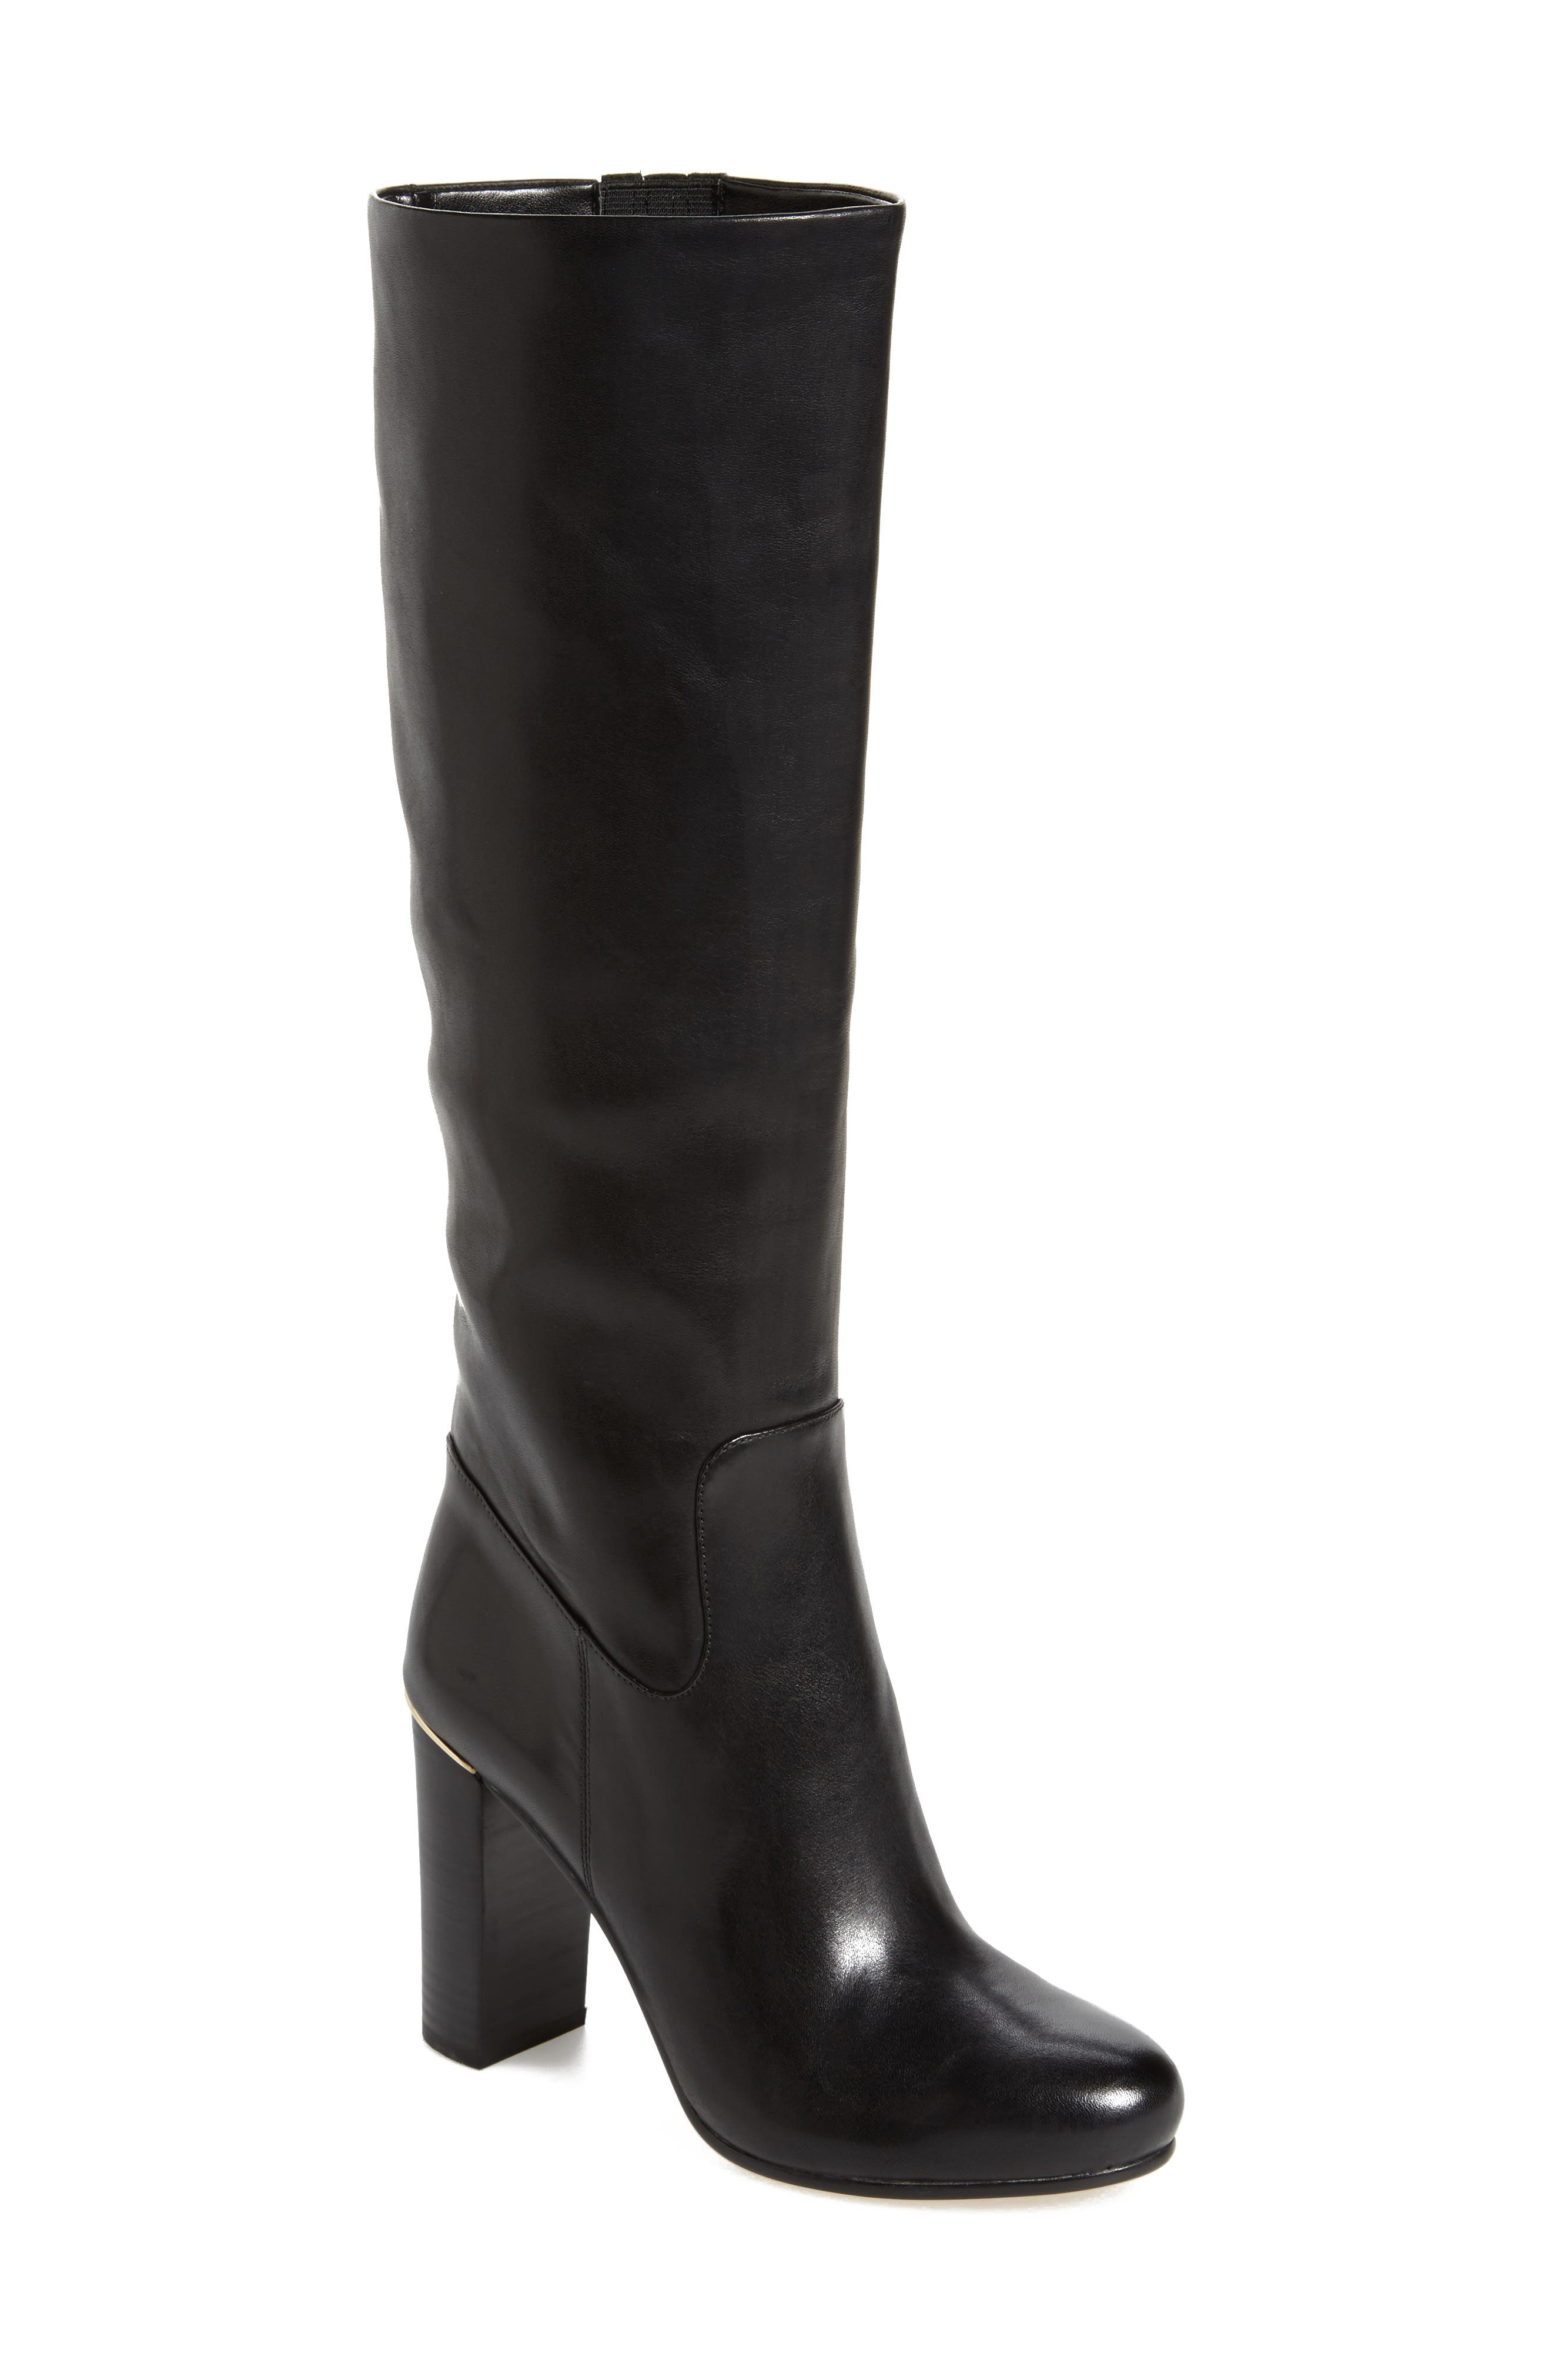 Janice Knee High Boot,                         Main,                         color, Black Calf Leather